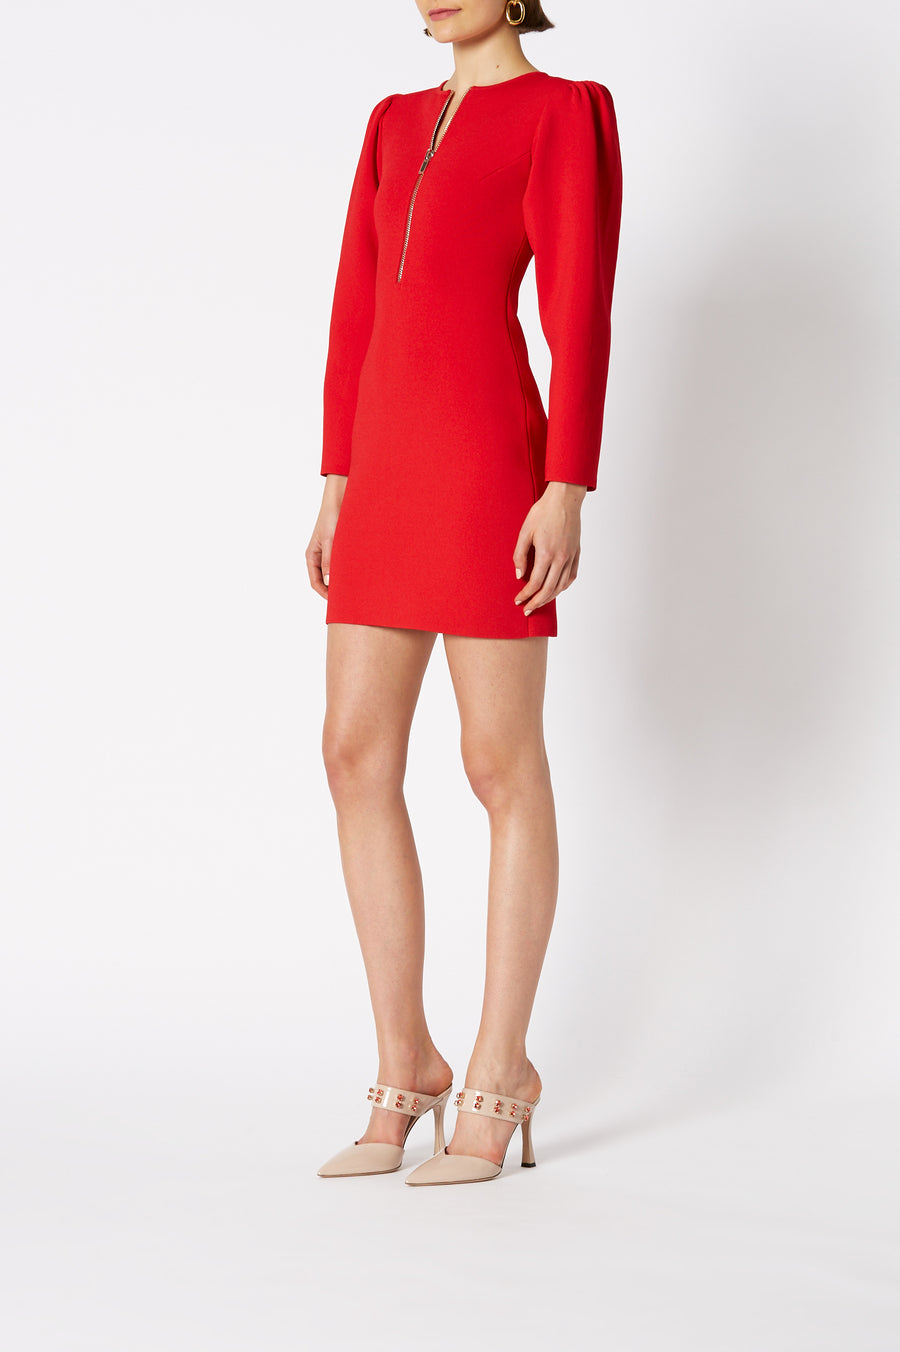 The Crepe Knit Gather Sleeve Dress is designed for slim fit and mini in length, color red